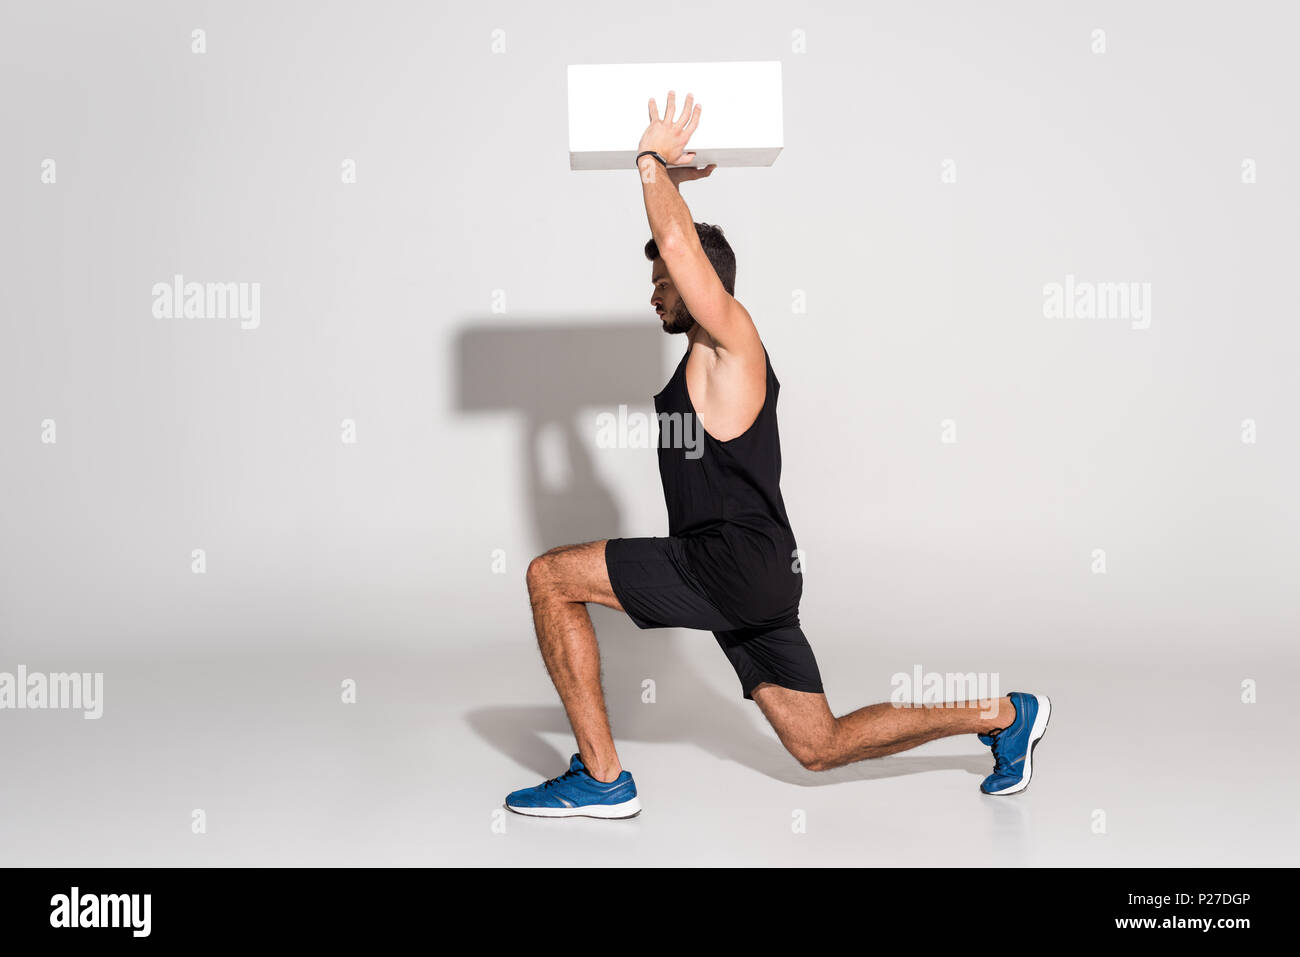 Man Doing Squats Stock Photos & Man Doing Squats Stock Images - Alamy